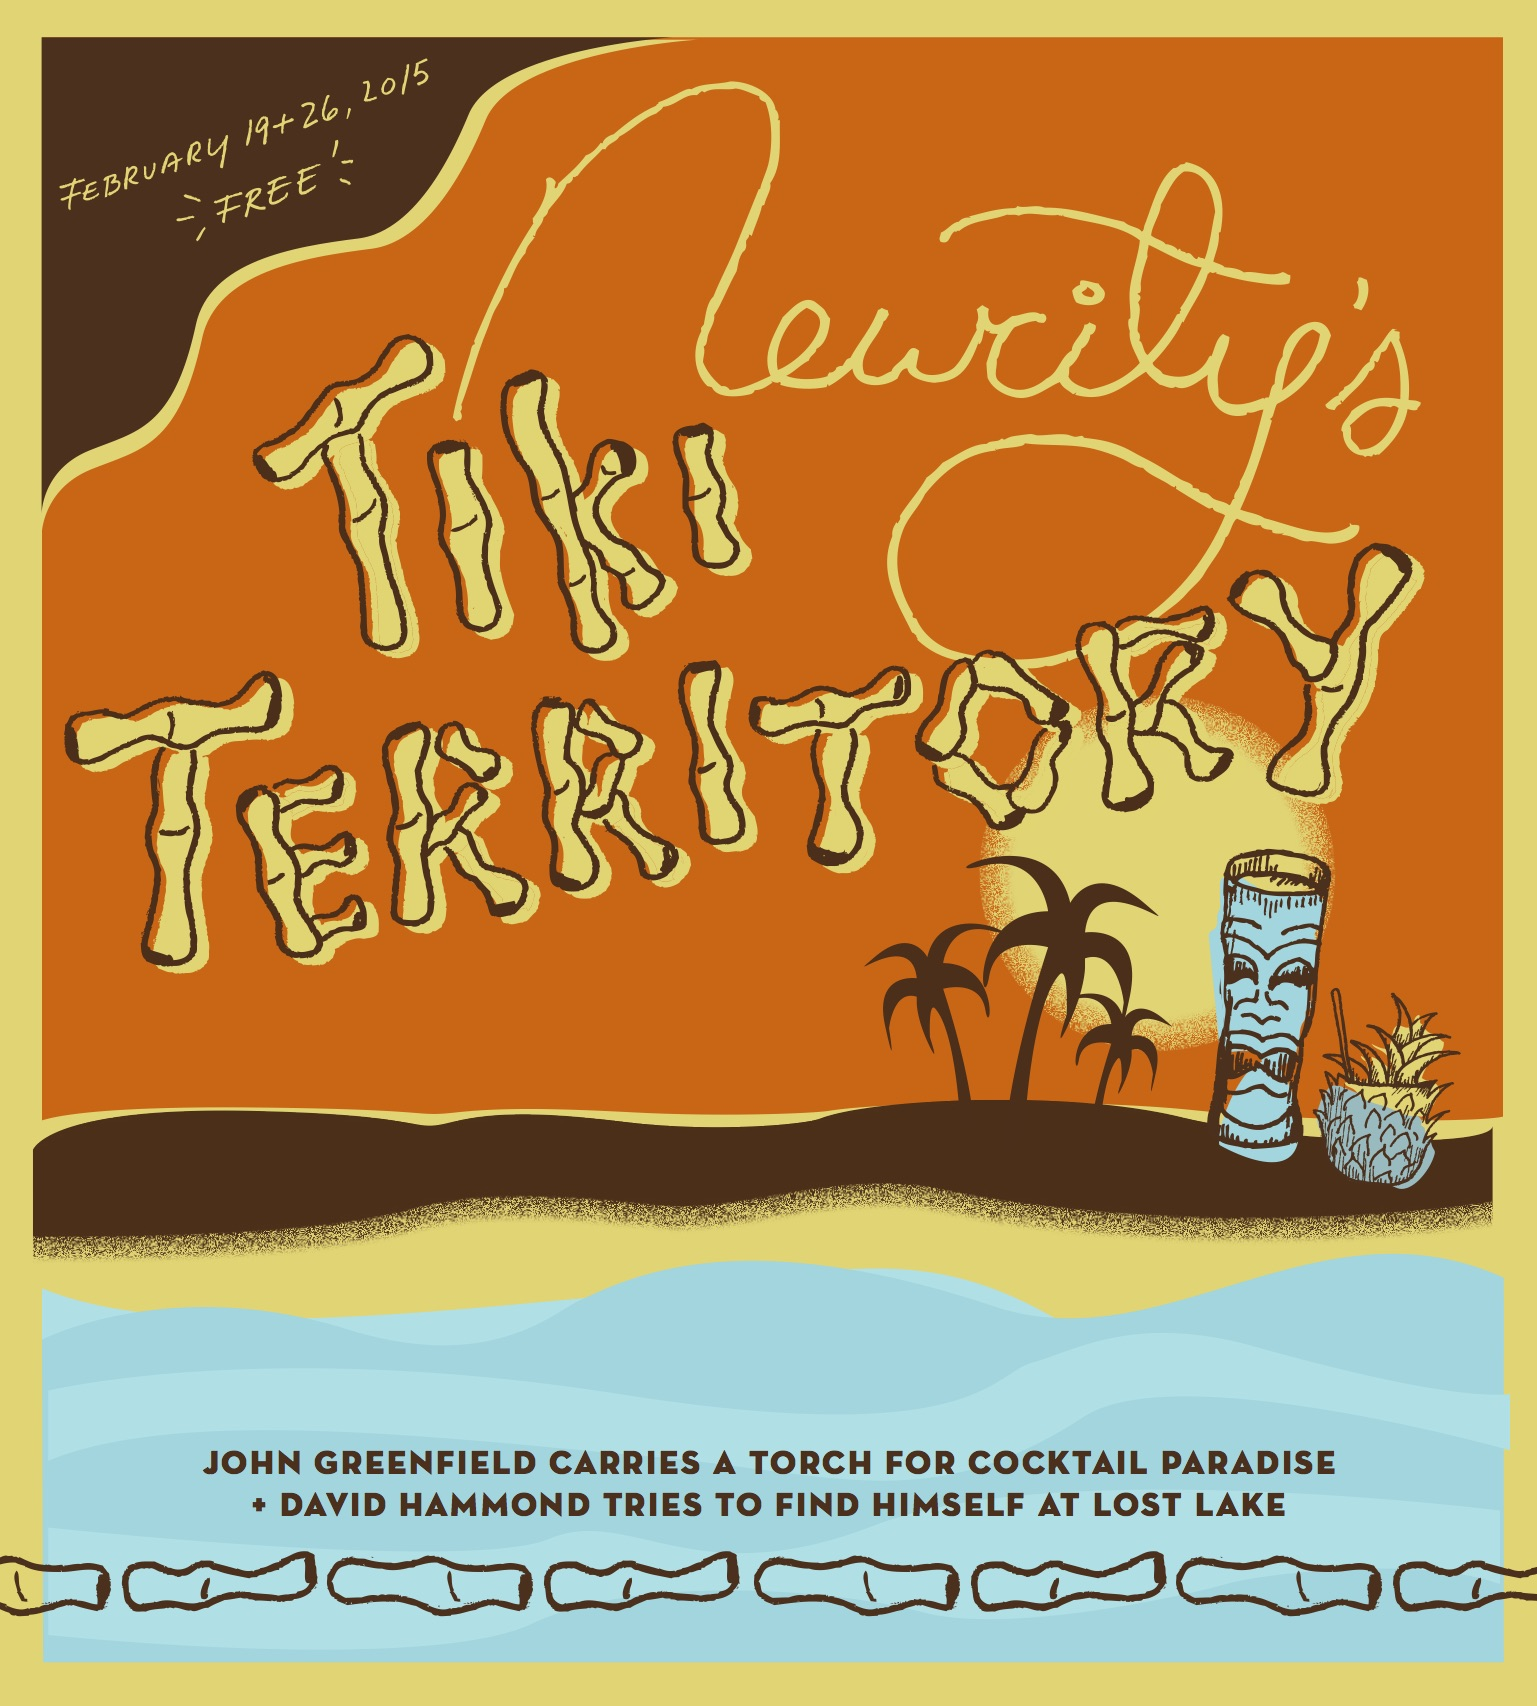 Tiki Territory: Carrying the Torch for Cocktail Paradise